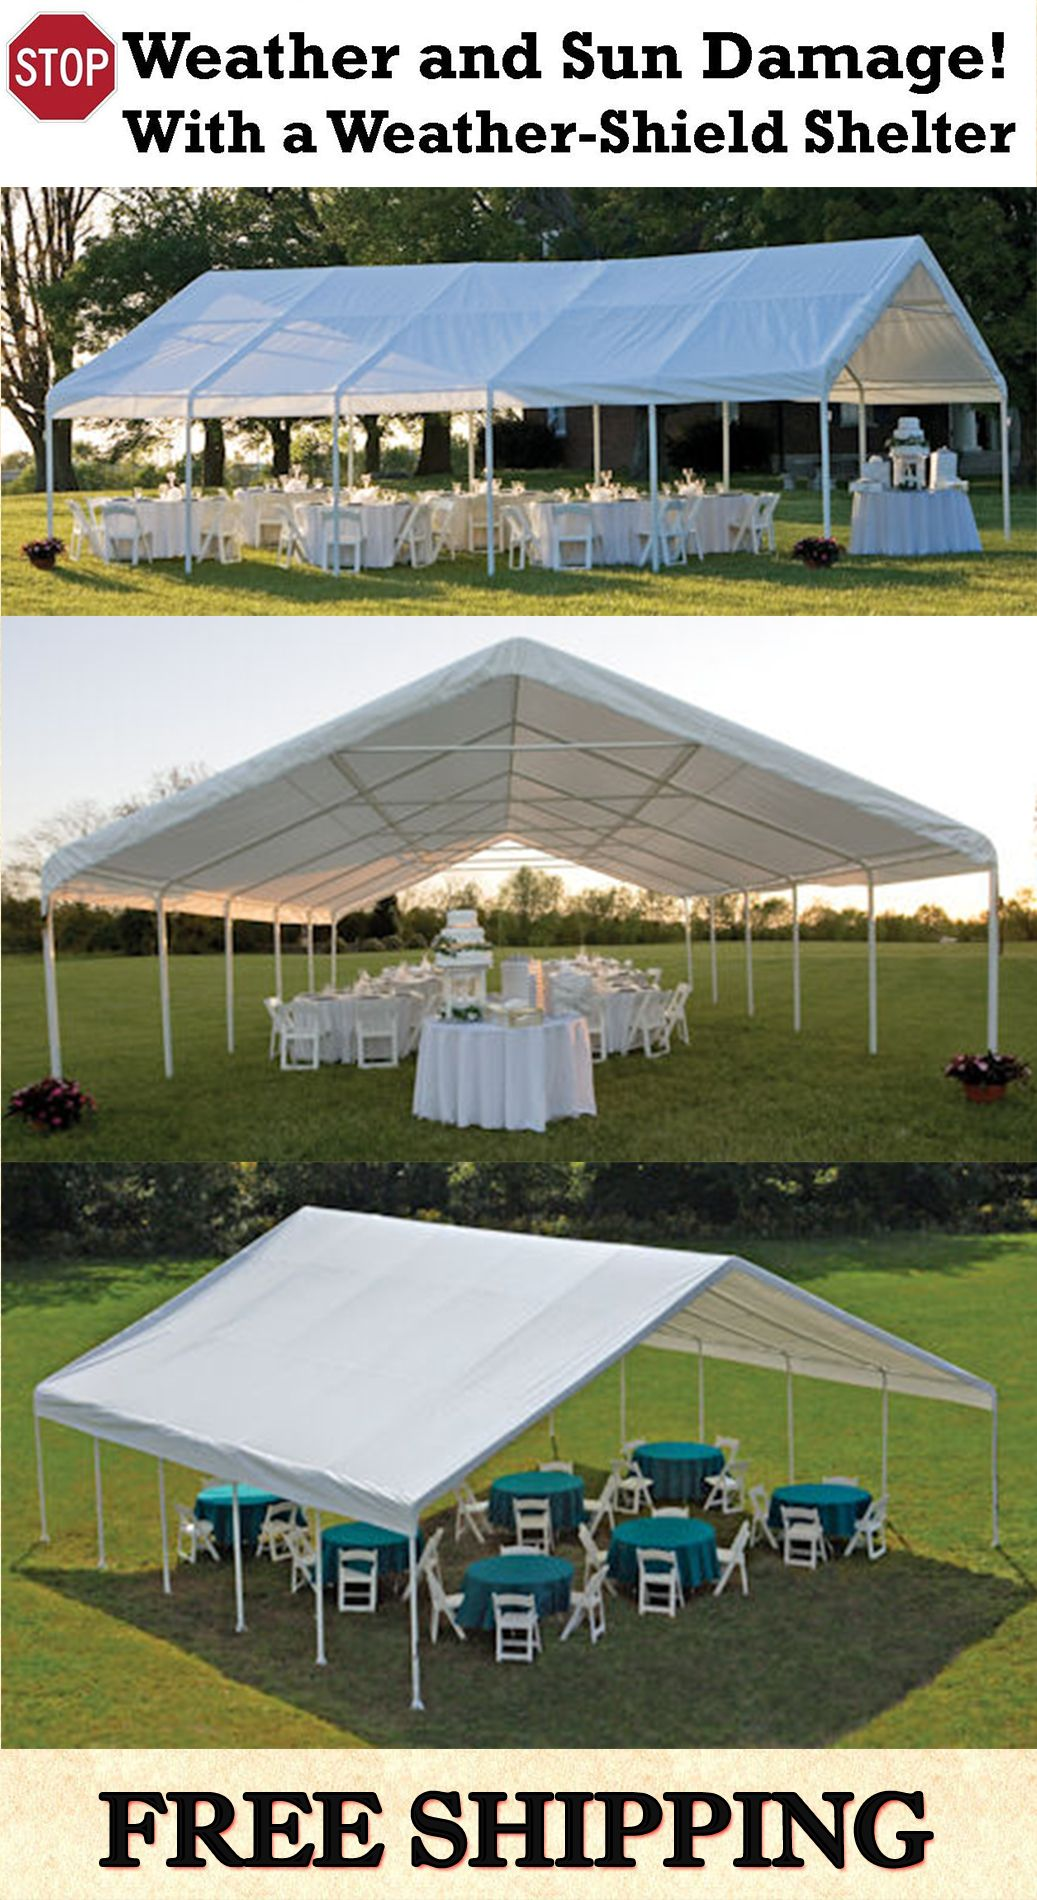 Weather-Shield and Shade Canopies **Heavy Duty Canopy - 30u0027 wide * & Weather-Shield and Shade Canopies **Heavy Duty Canopy - 30u0027 wide ...